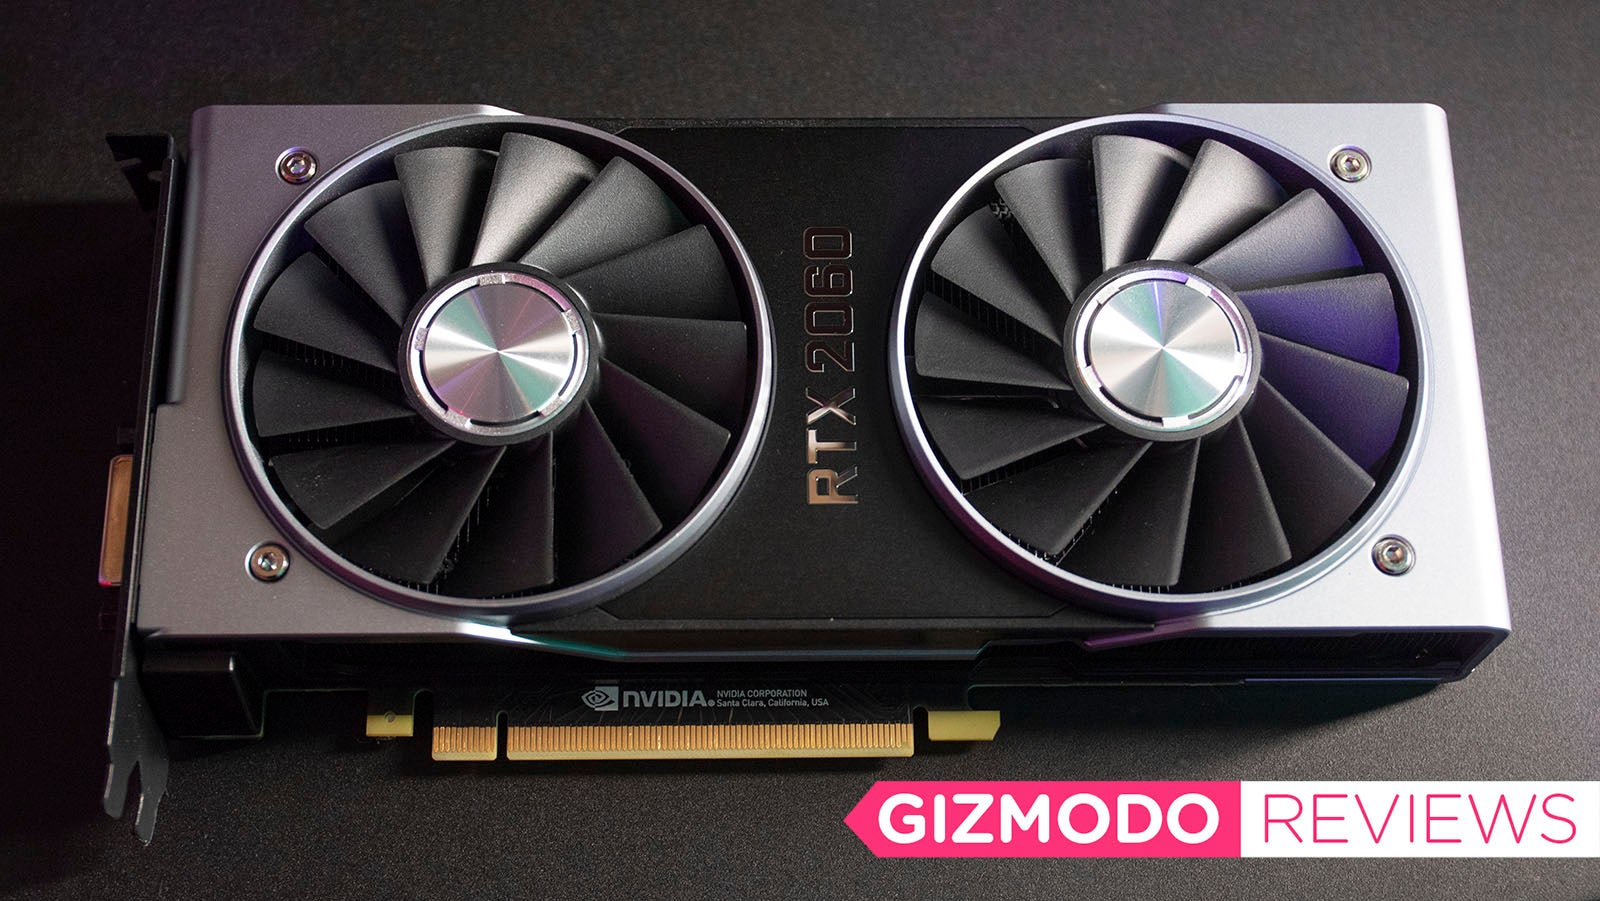 nvidia nvidia-20-series nvidia-rtx-2060-review ray-tracing rtx-2060